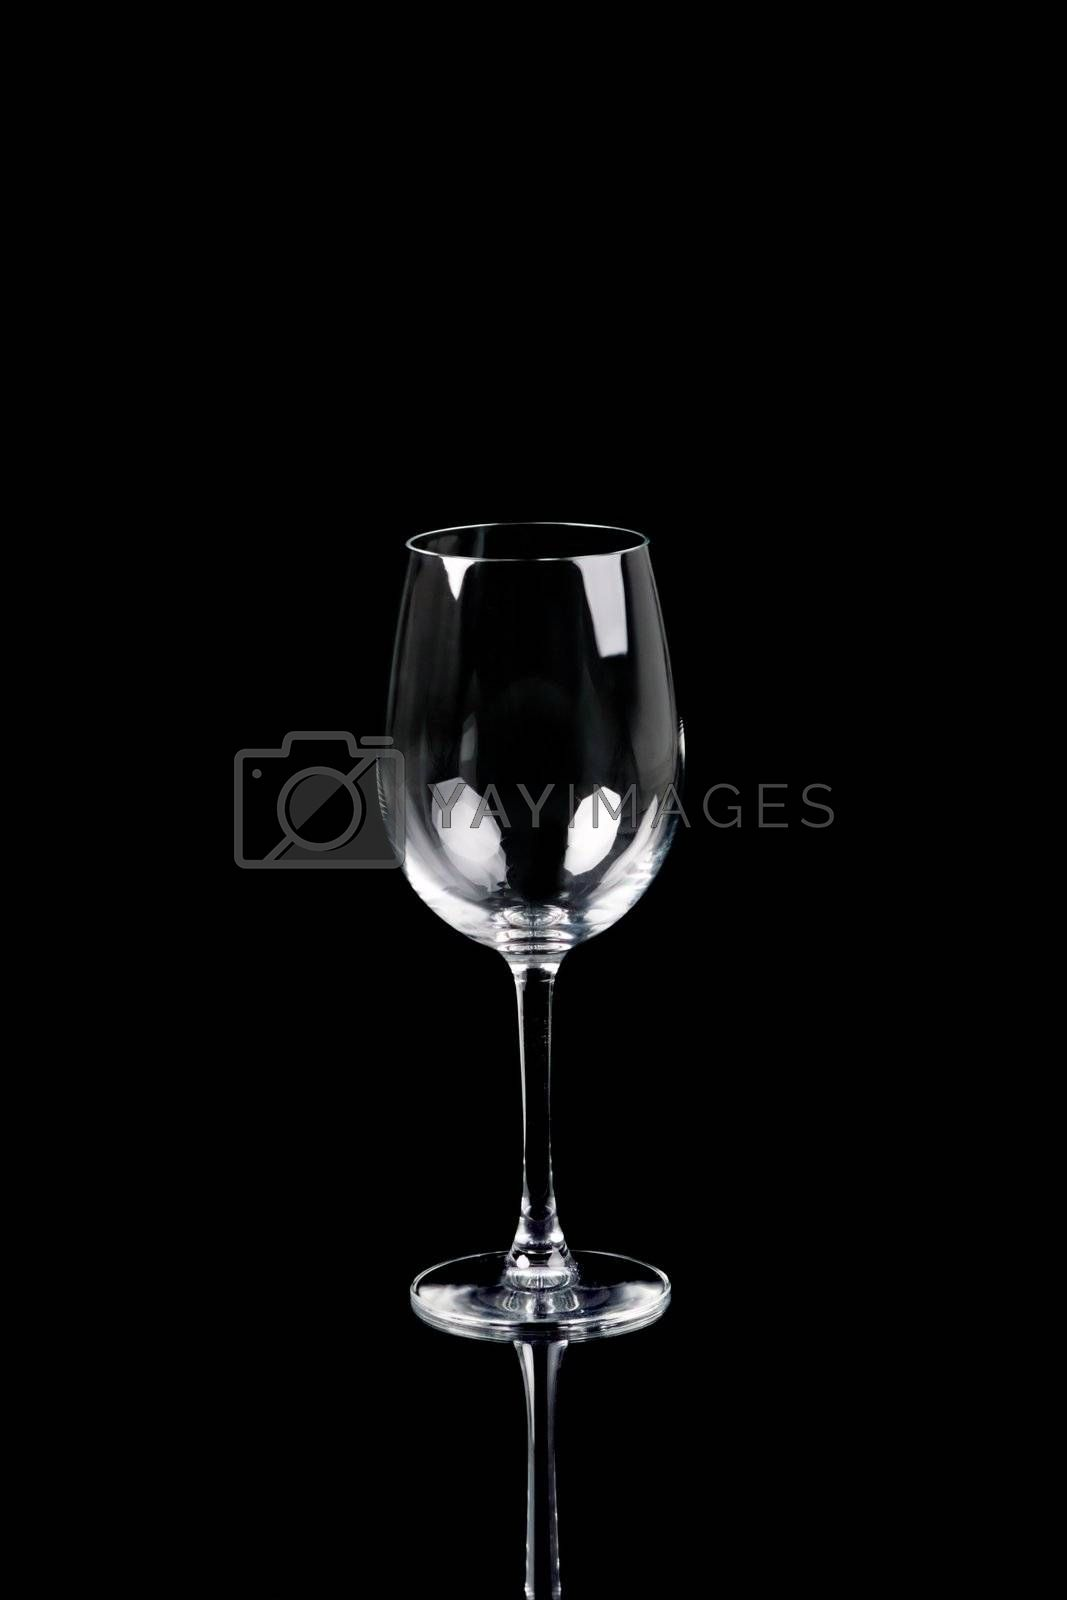 Empty wine glass on black background with reflection